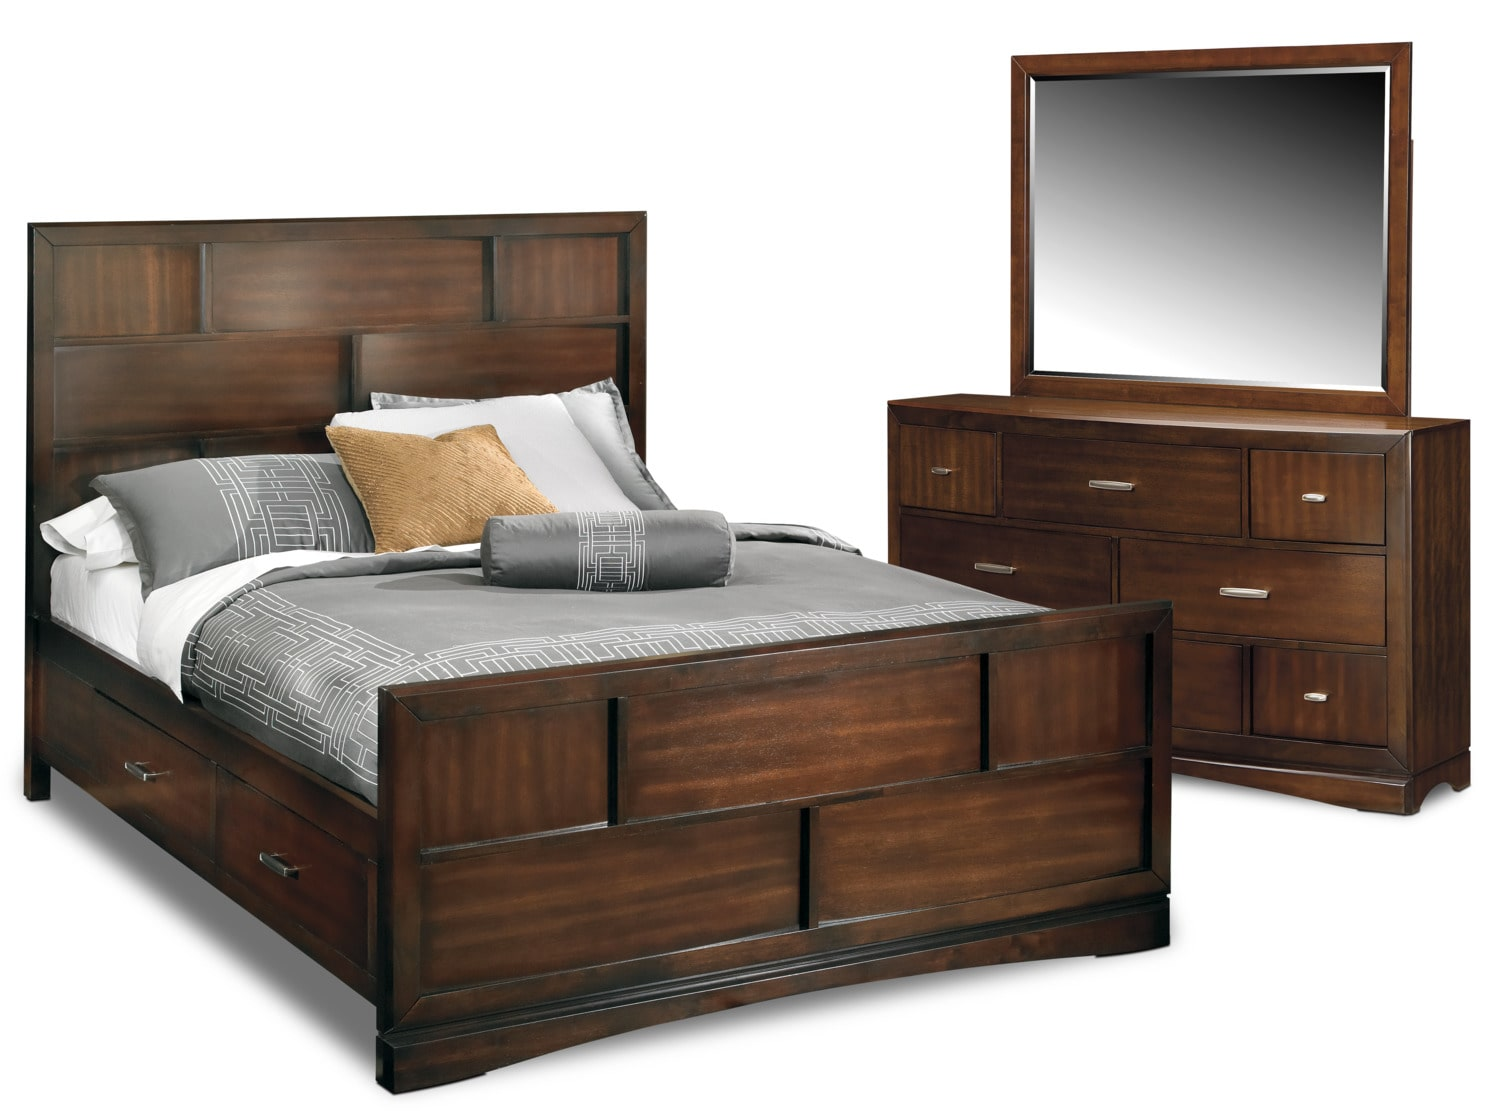 Toronto 5-Piece Queen Storage Bedroom Set - Pecan